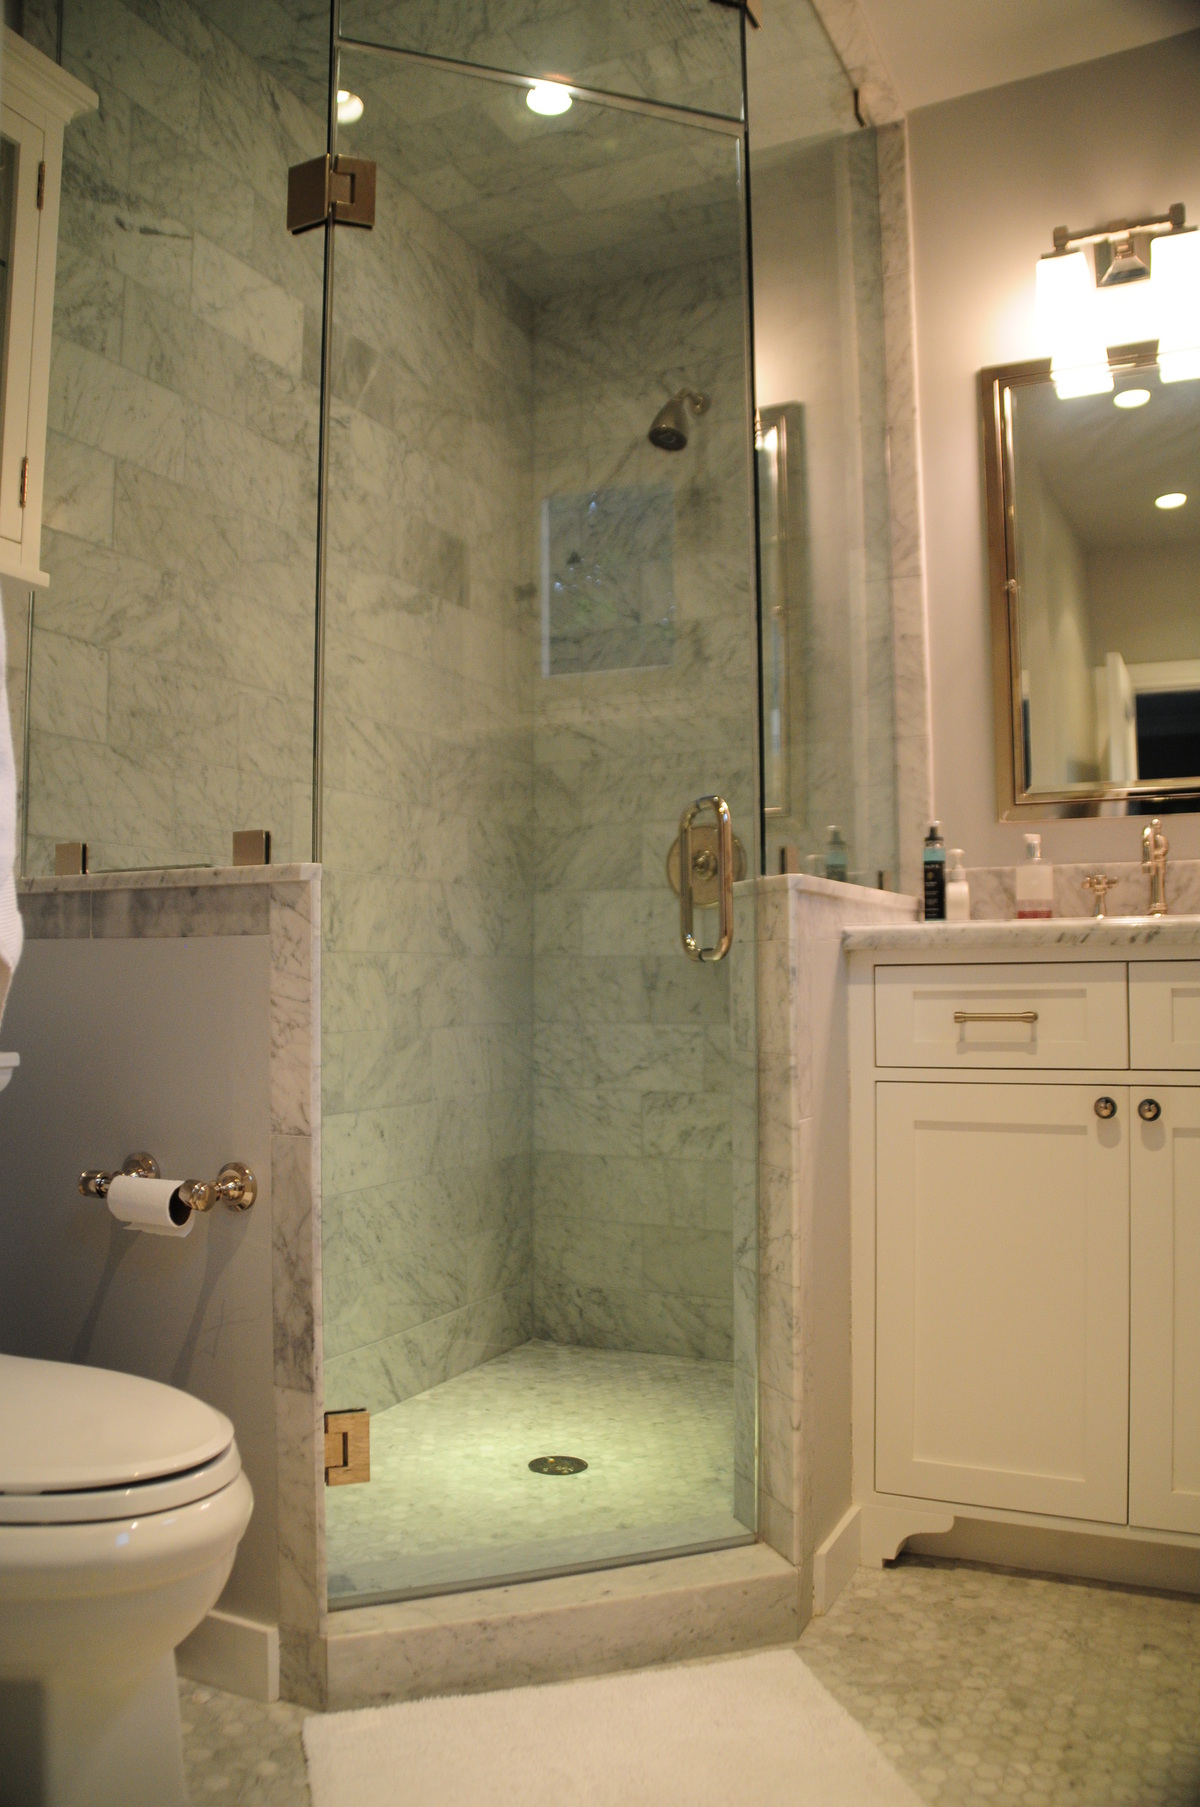 The utility room was reorganized to create a new master bath.